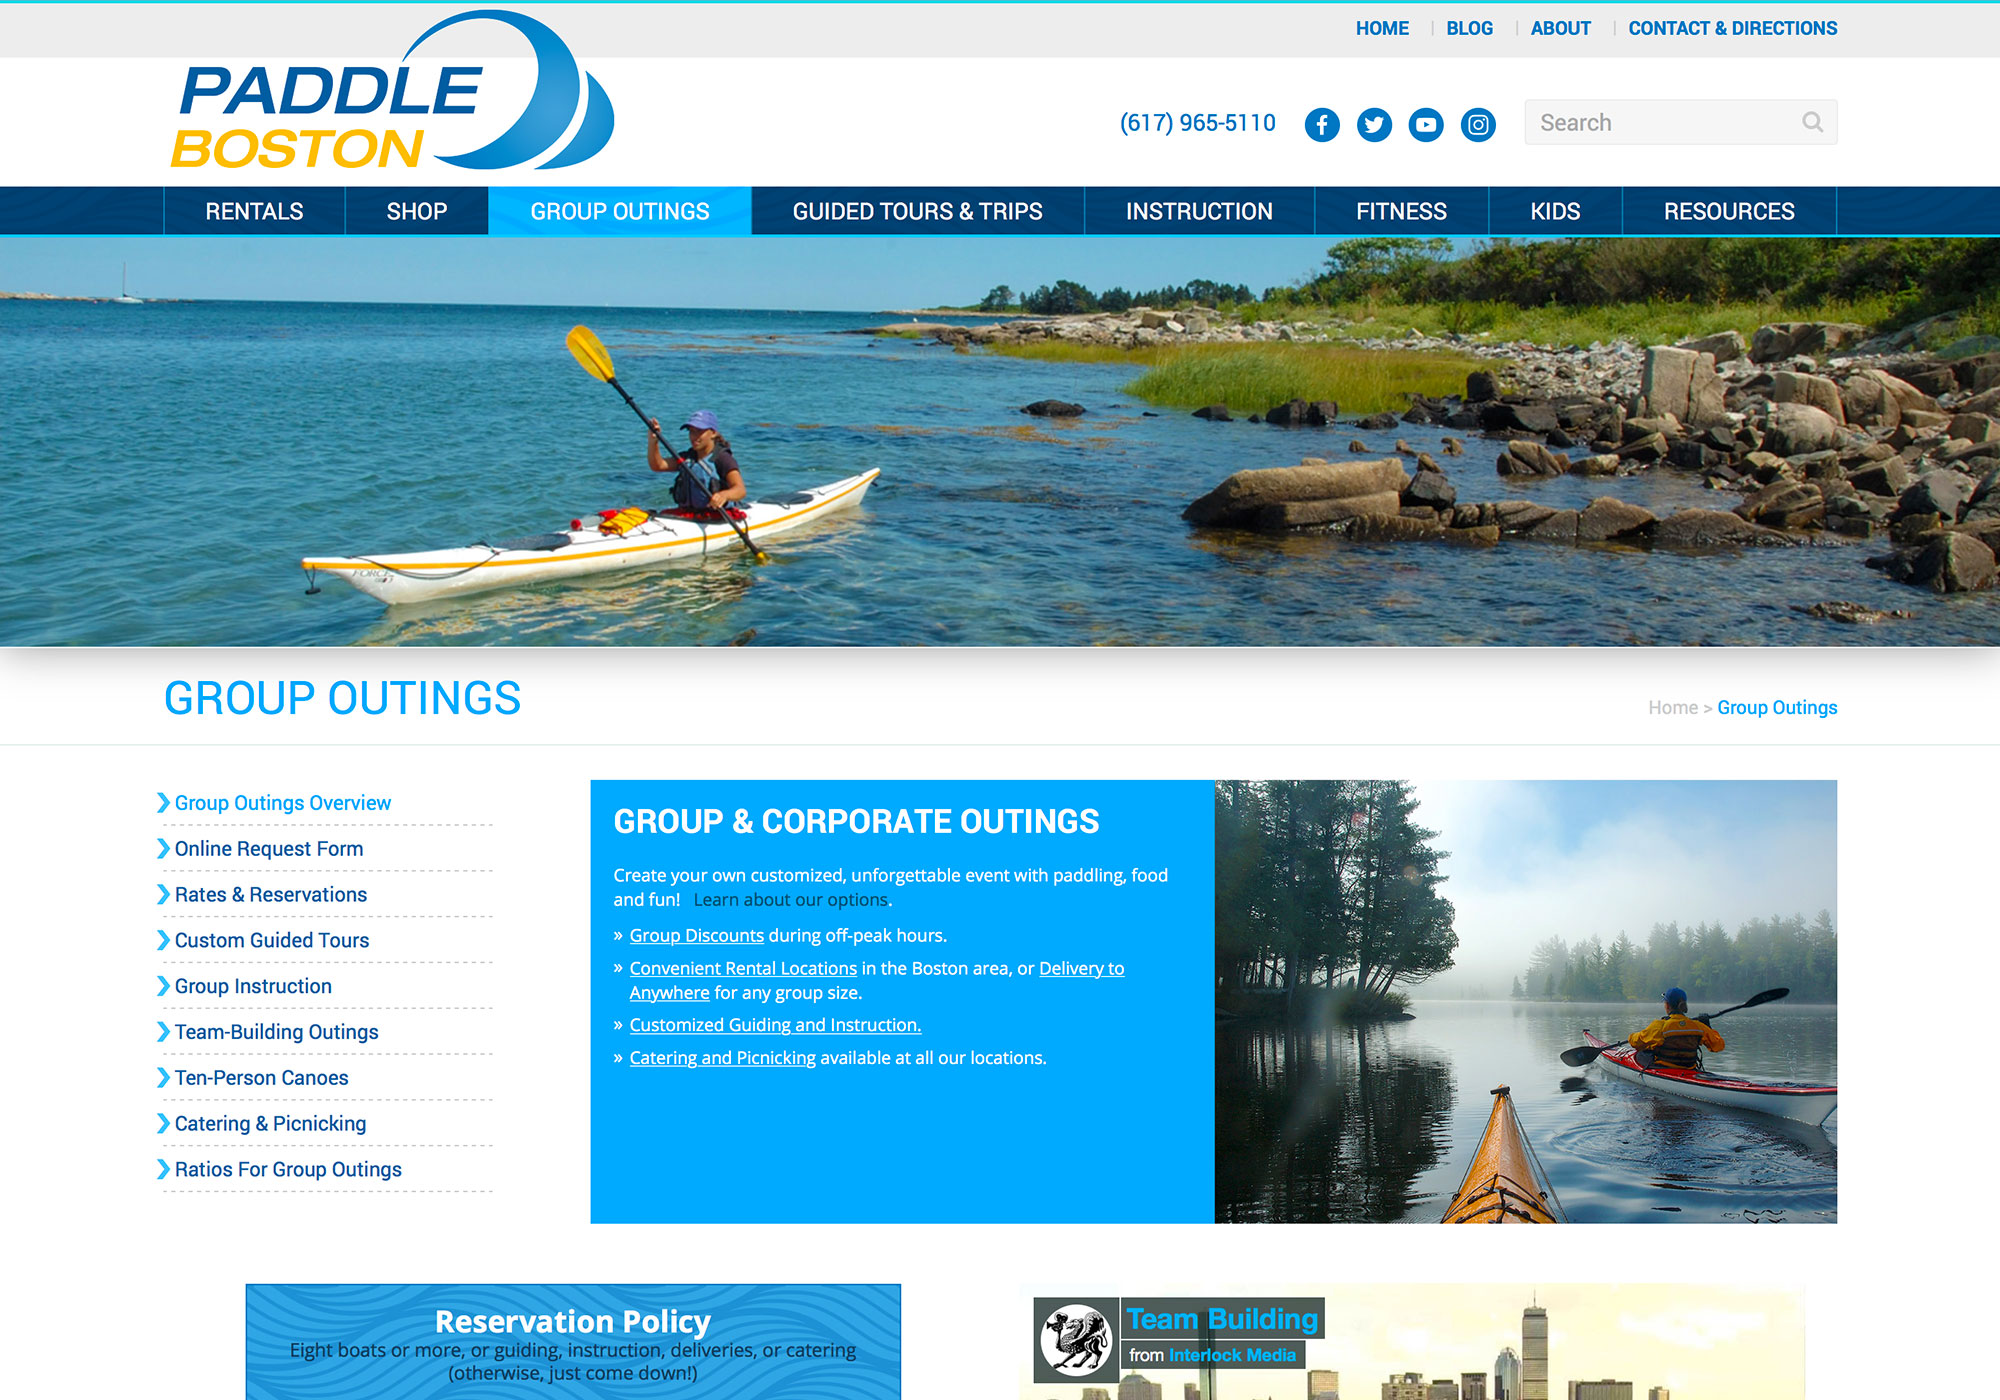 Signing up for Paddle Bostons Group Outings on Kayaks, and Canoes is easy with custom wordpress website design by Maine website design company, SlickFish Studios.